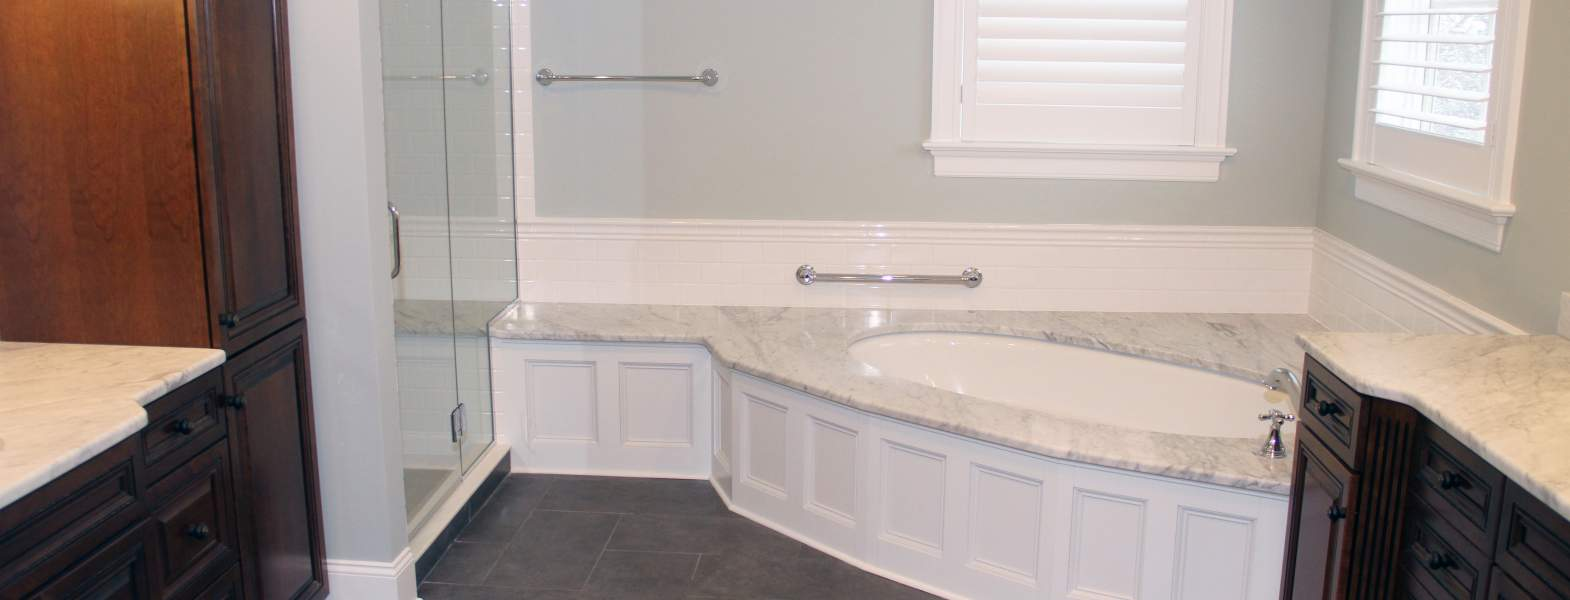 Traditional Master Bath With Carrara Marble > Bathrooms > Projects ...